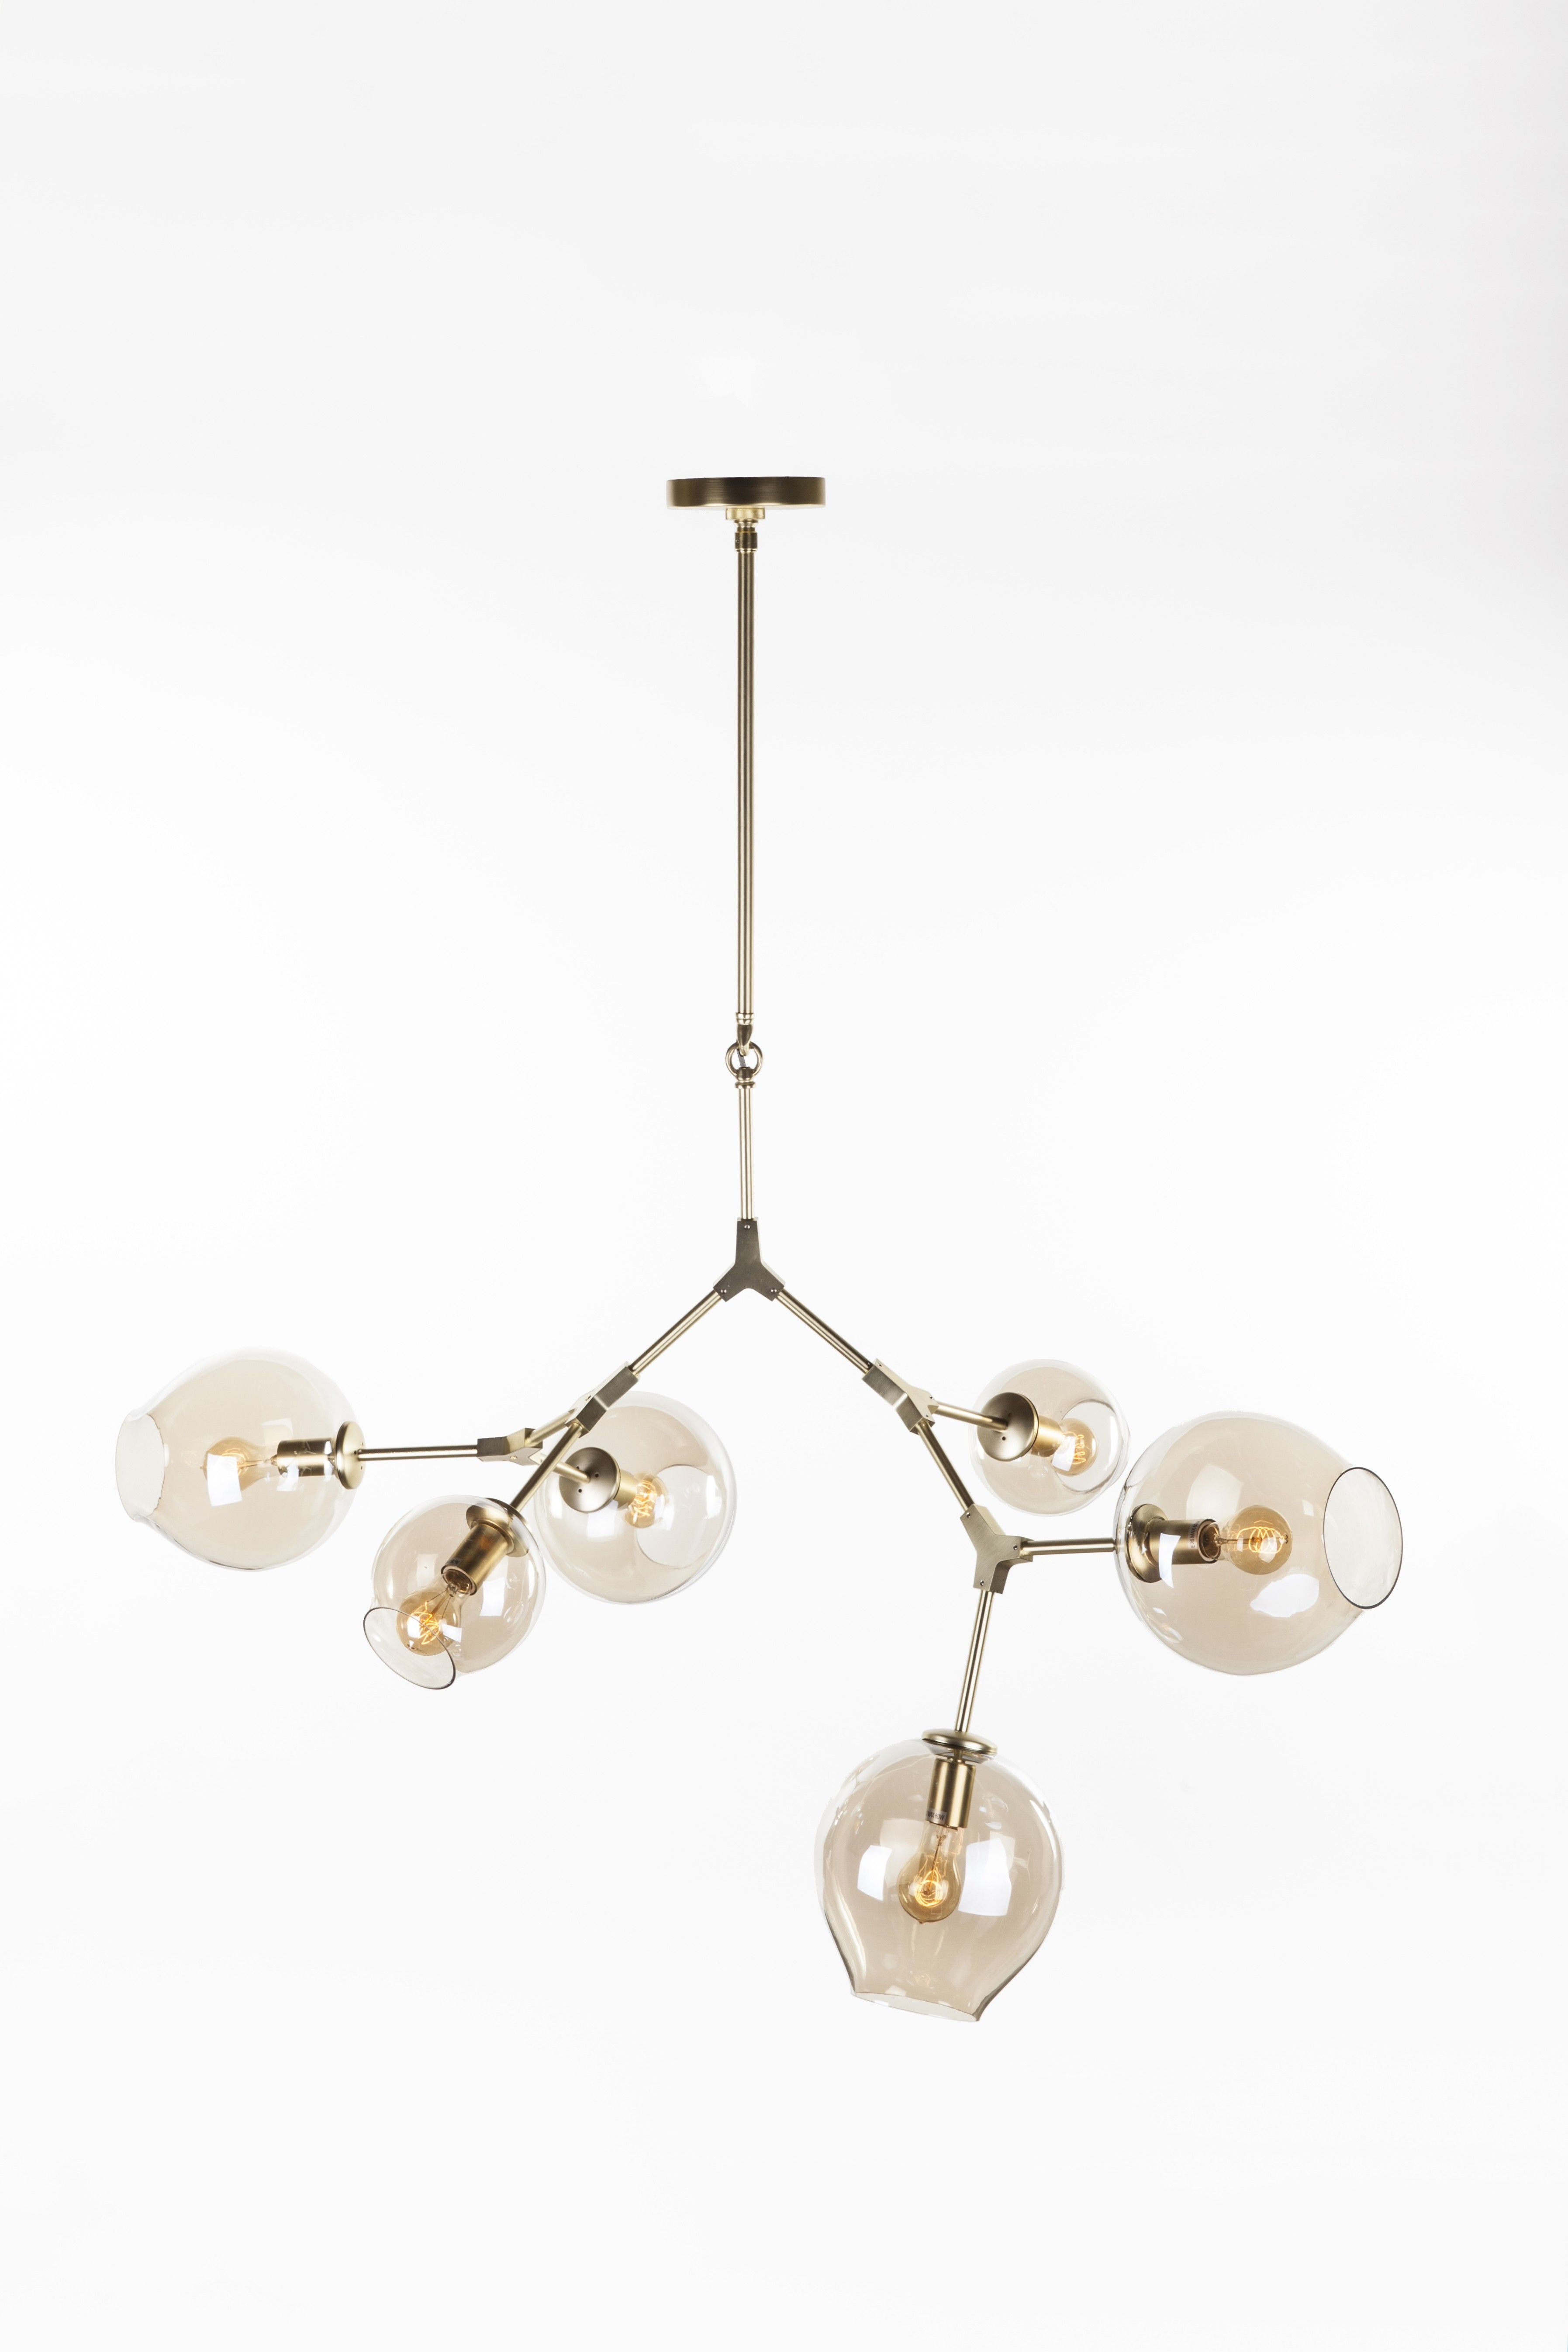 Six Globe Stige Ceiling Lamp Gold The Country Club